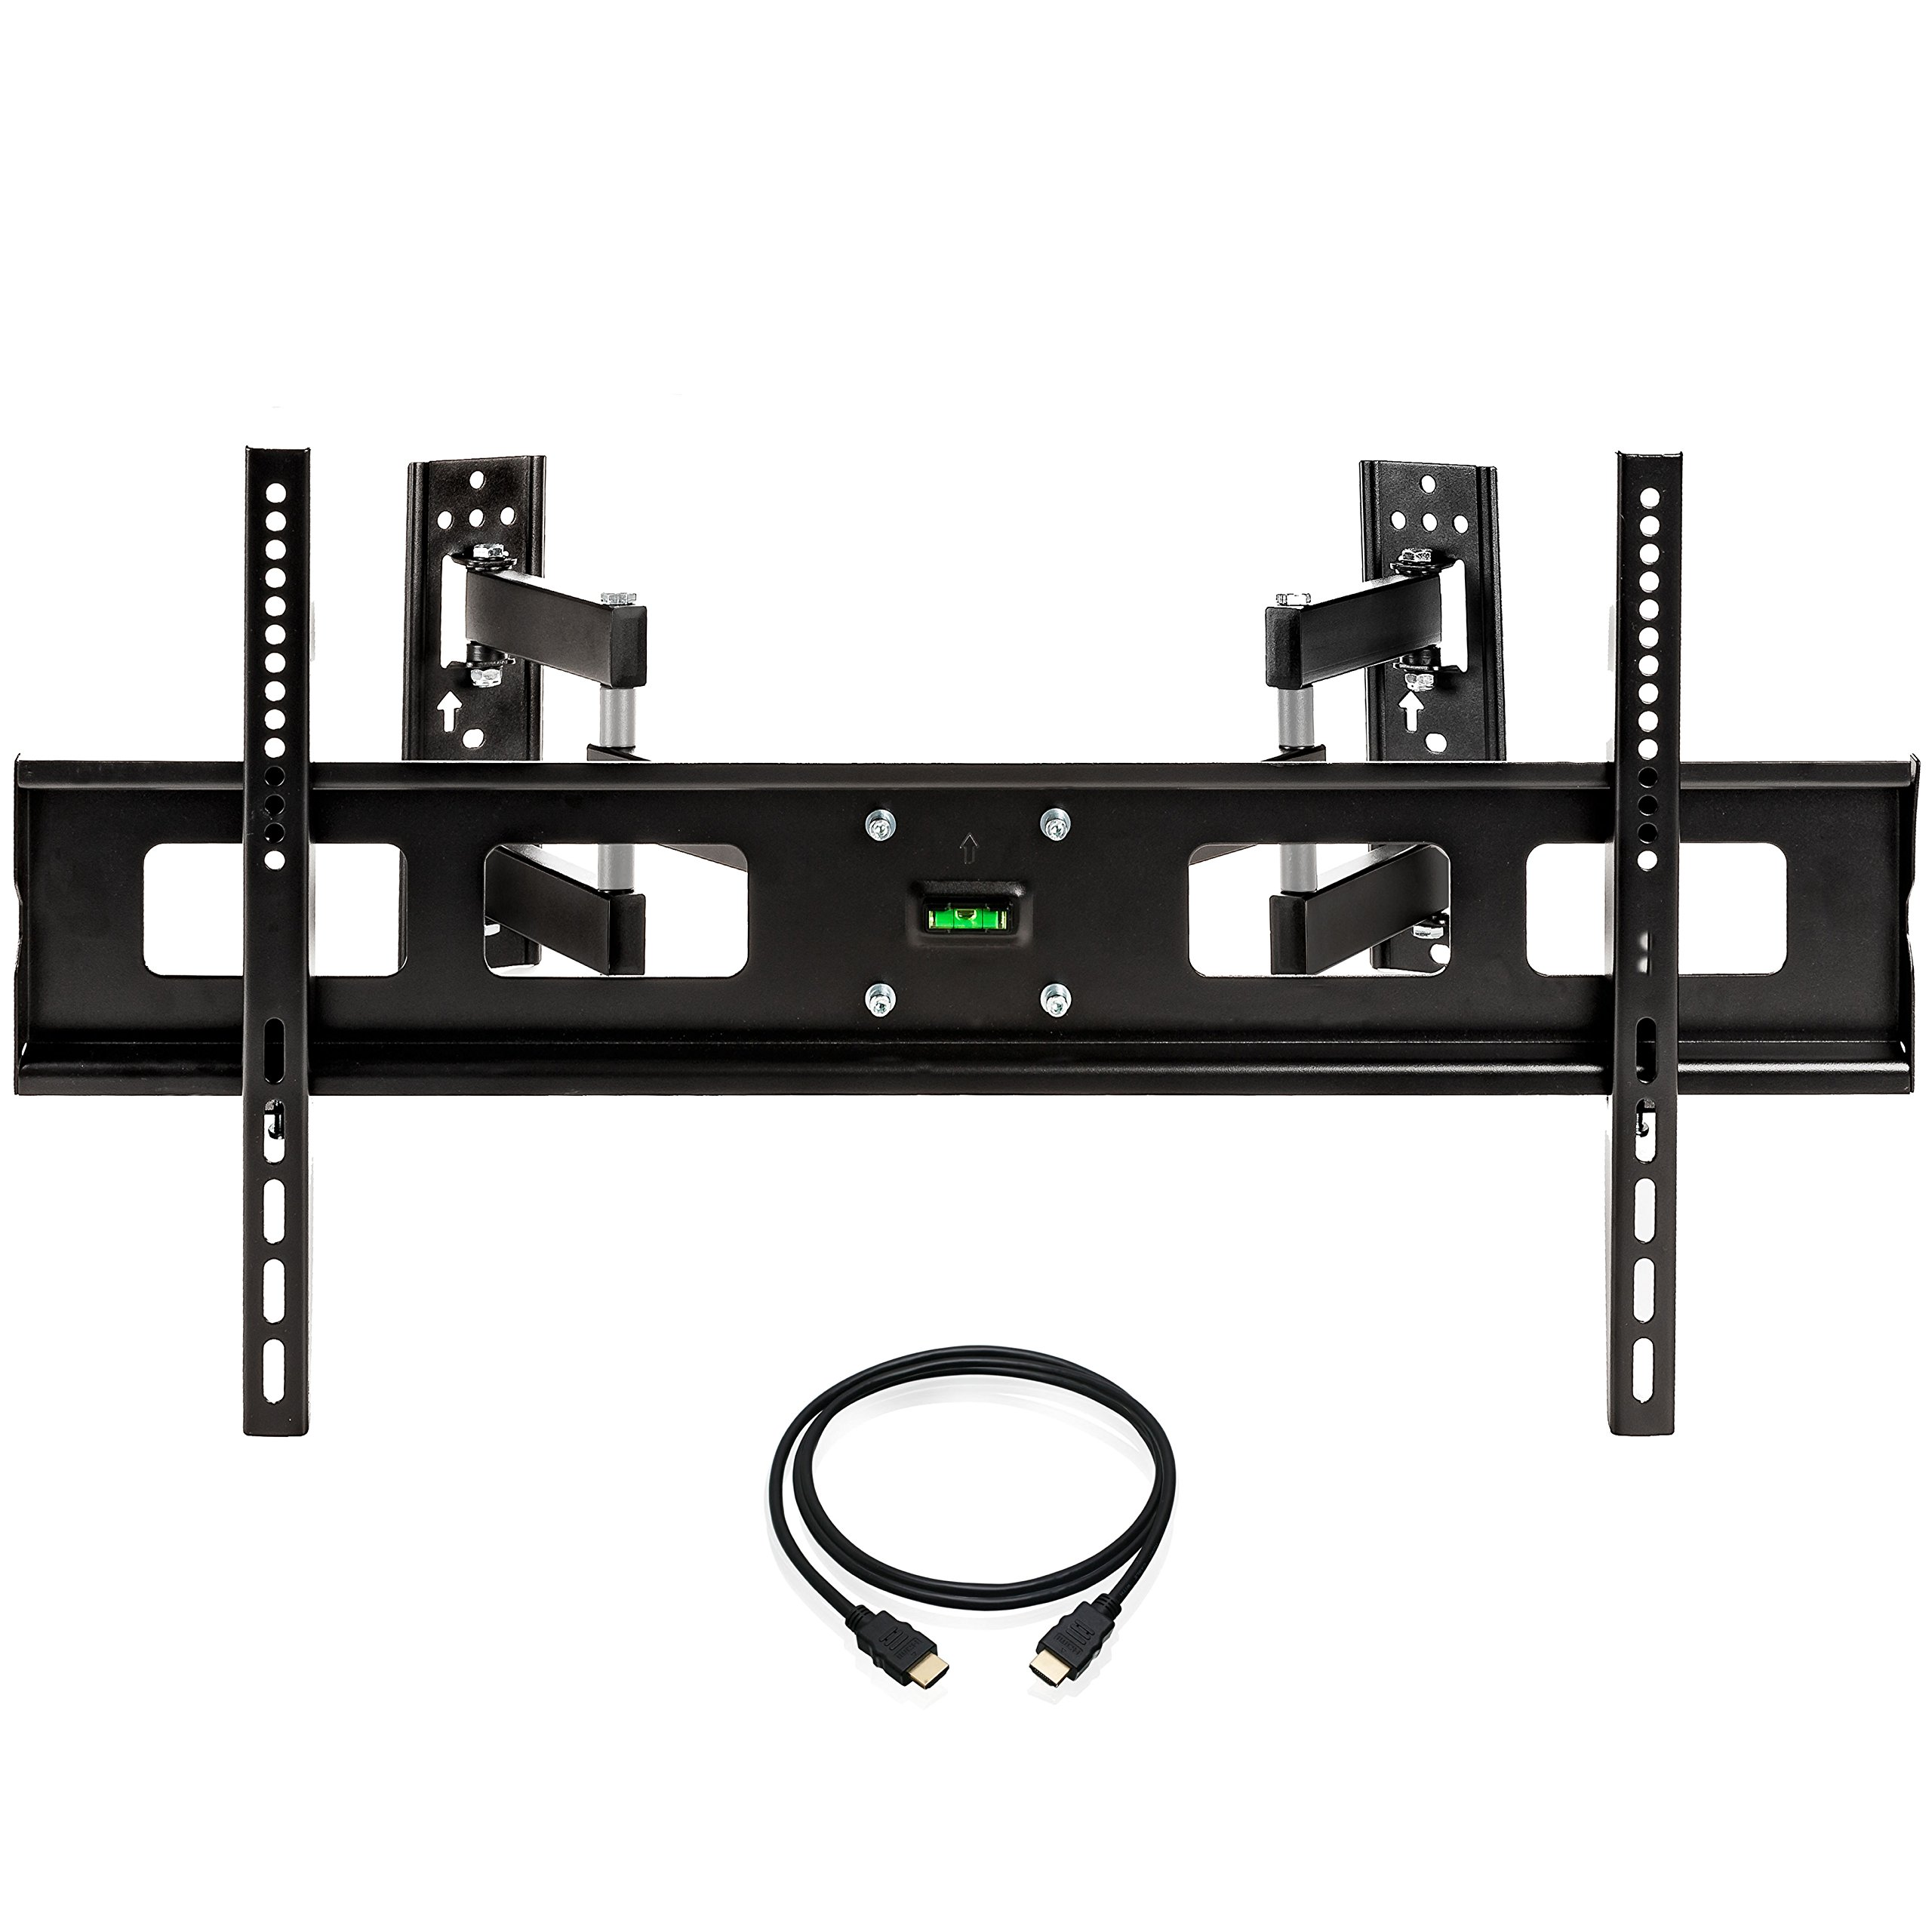 InstallerParts 37''-65'' TV Corner Mount – Swivel/Tilt – 20'' Dual Extension Arm – Heavy Duty LCD LED TV Monitor Flat Panel Screen, HDMI Cable